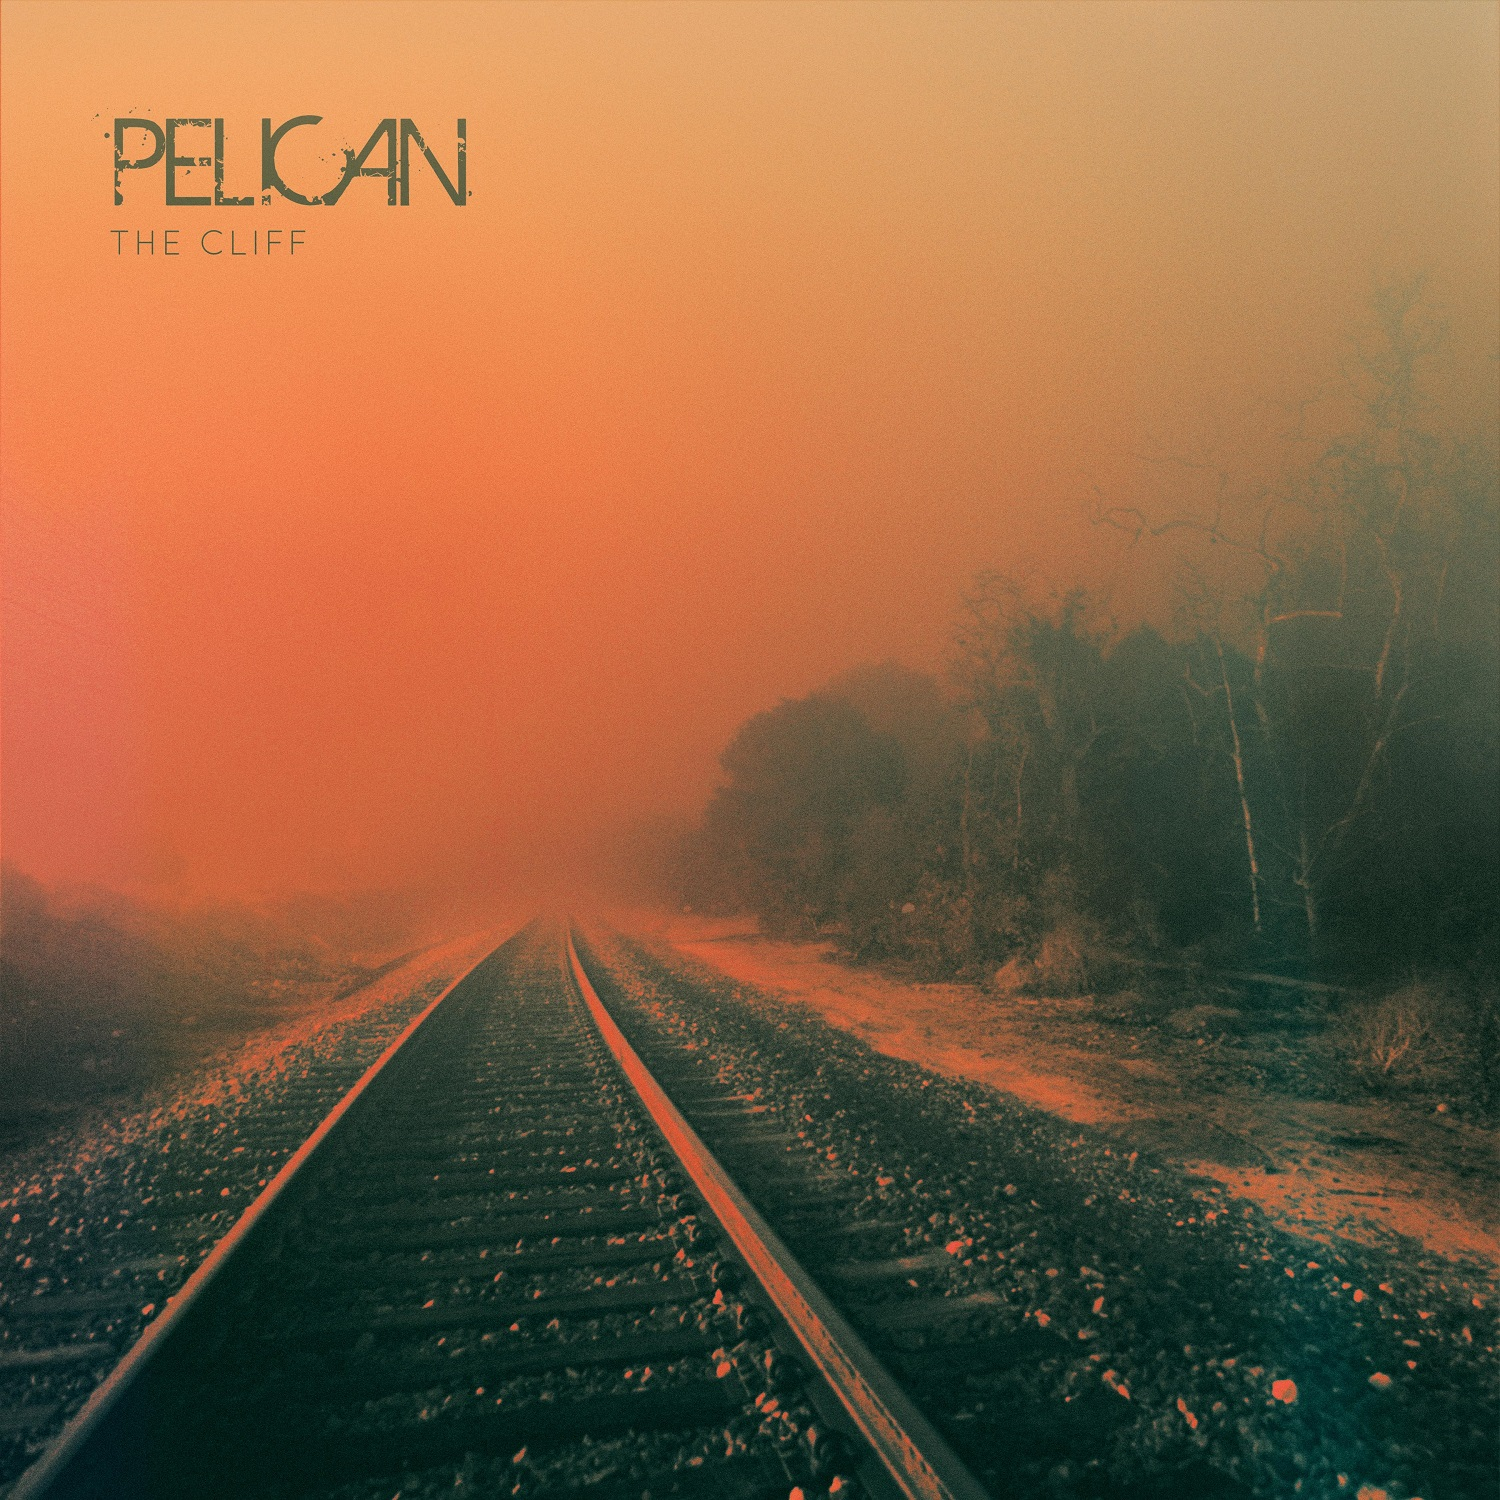 Pelican – The Cliff Review